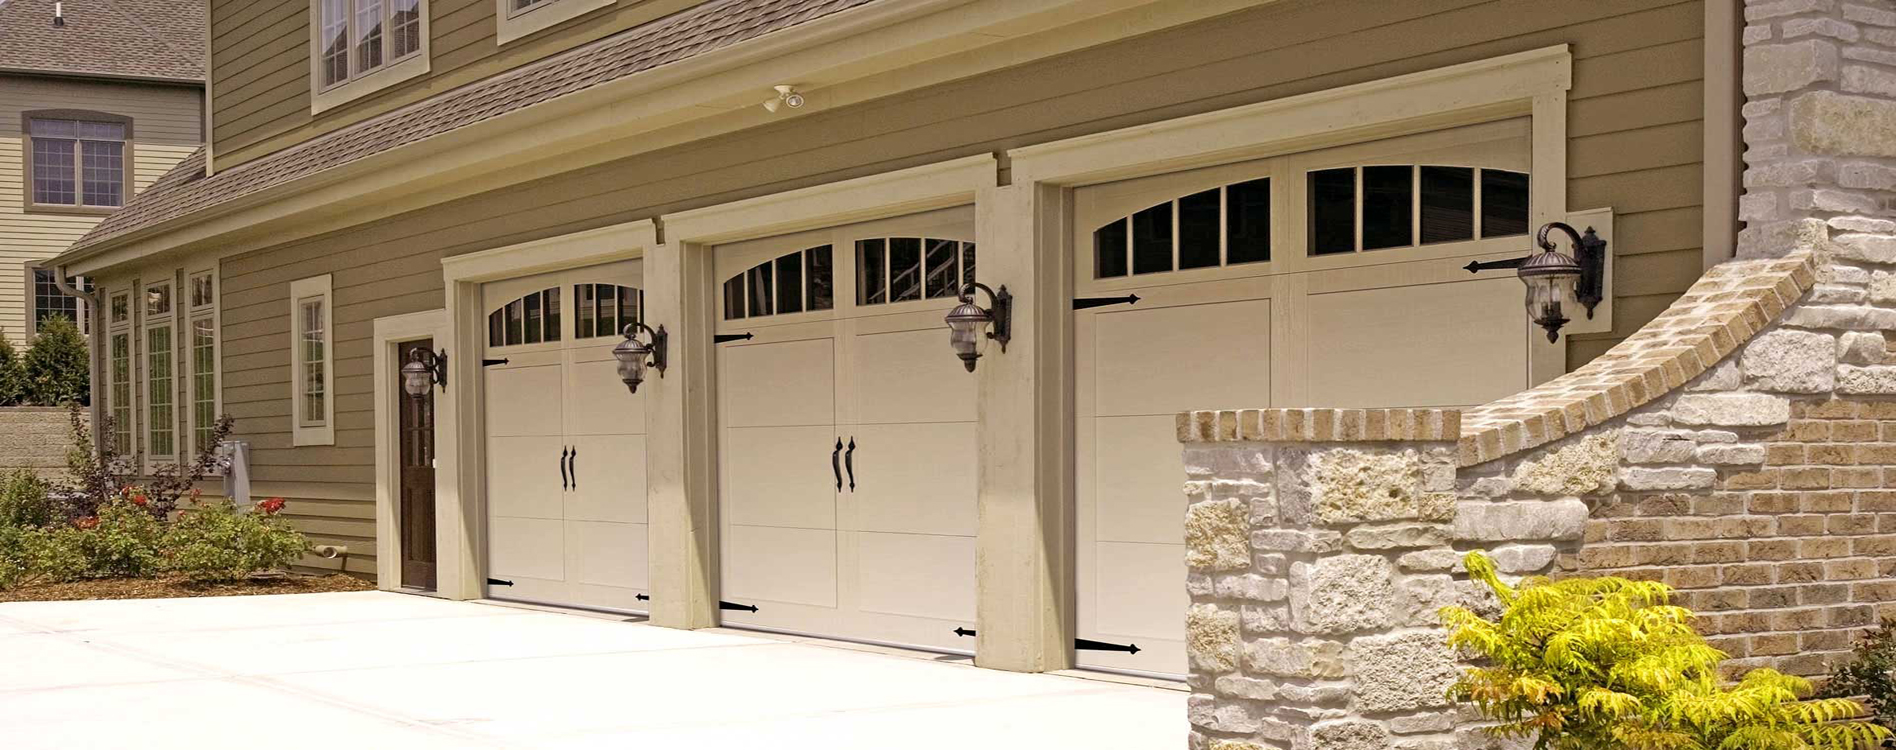 Garage Door Parts Reno Nv Garage Door Lilburn Ga Lilburn Garage Door Repair Garage Doors